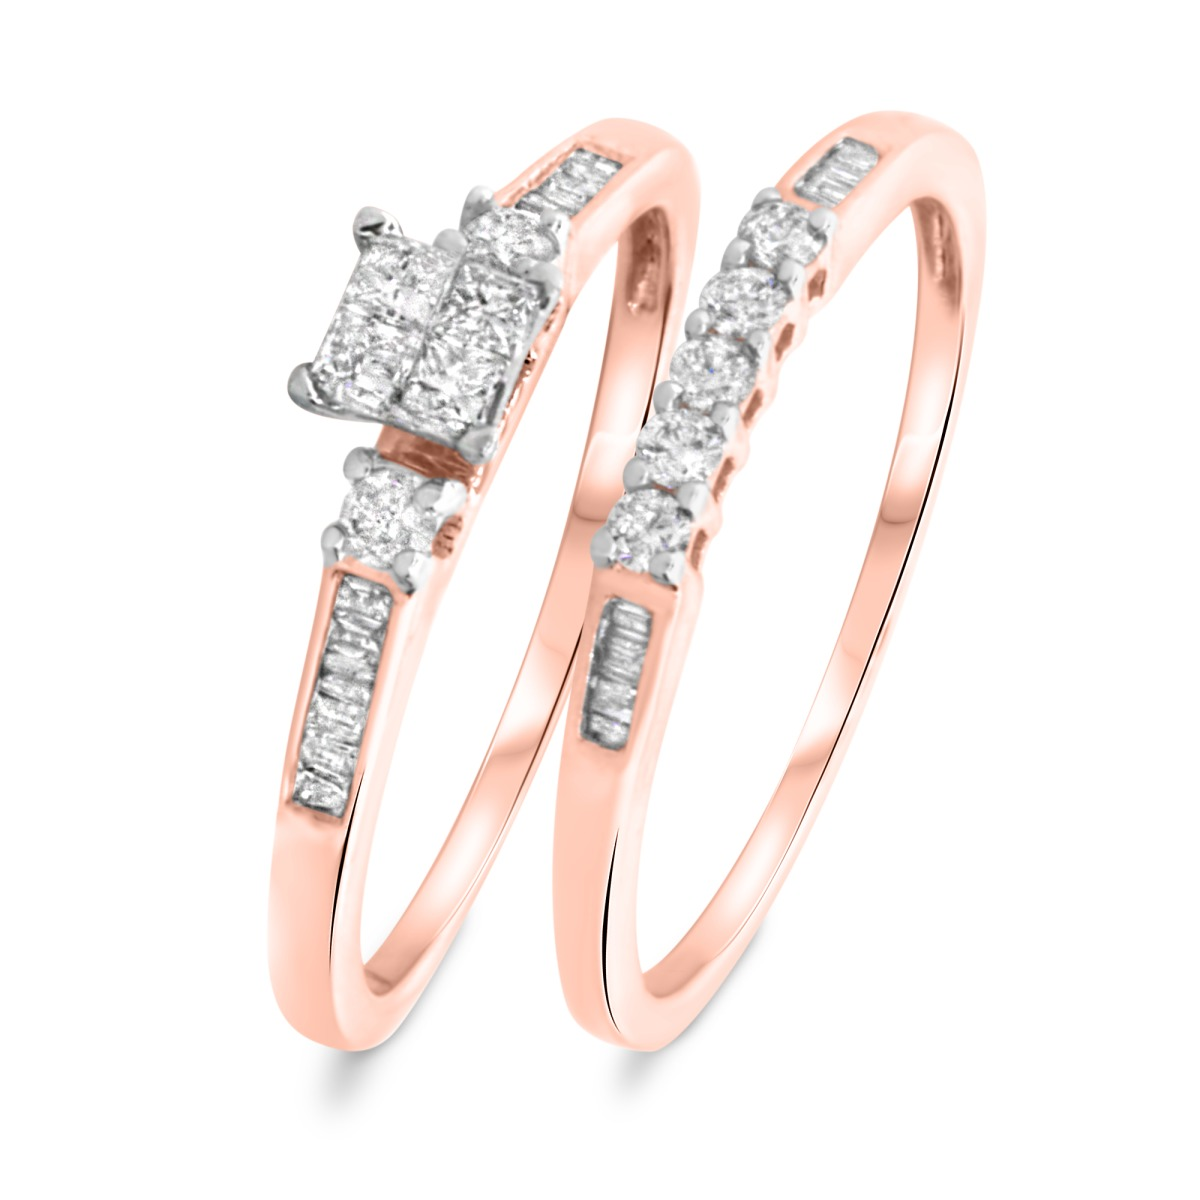 3/8 CT. T.W. Princess, Round, Baguette Cut Diamond Ladies Bridal Wedding Ring Set 14K Rose Gold